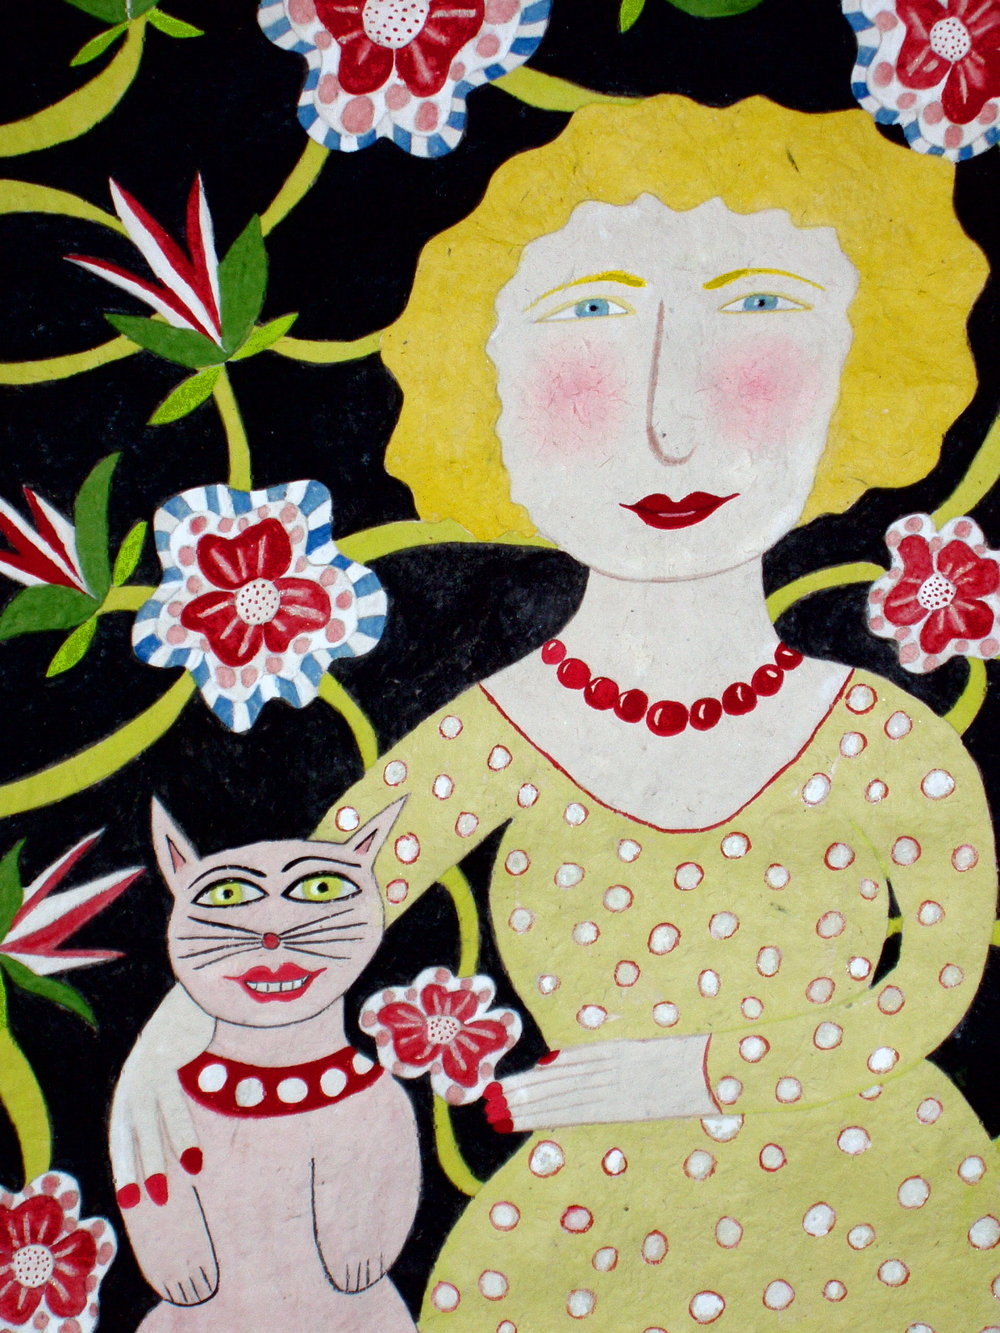 Blond Headed Woman with Cat